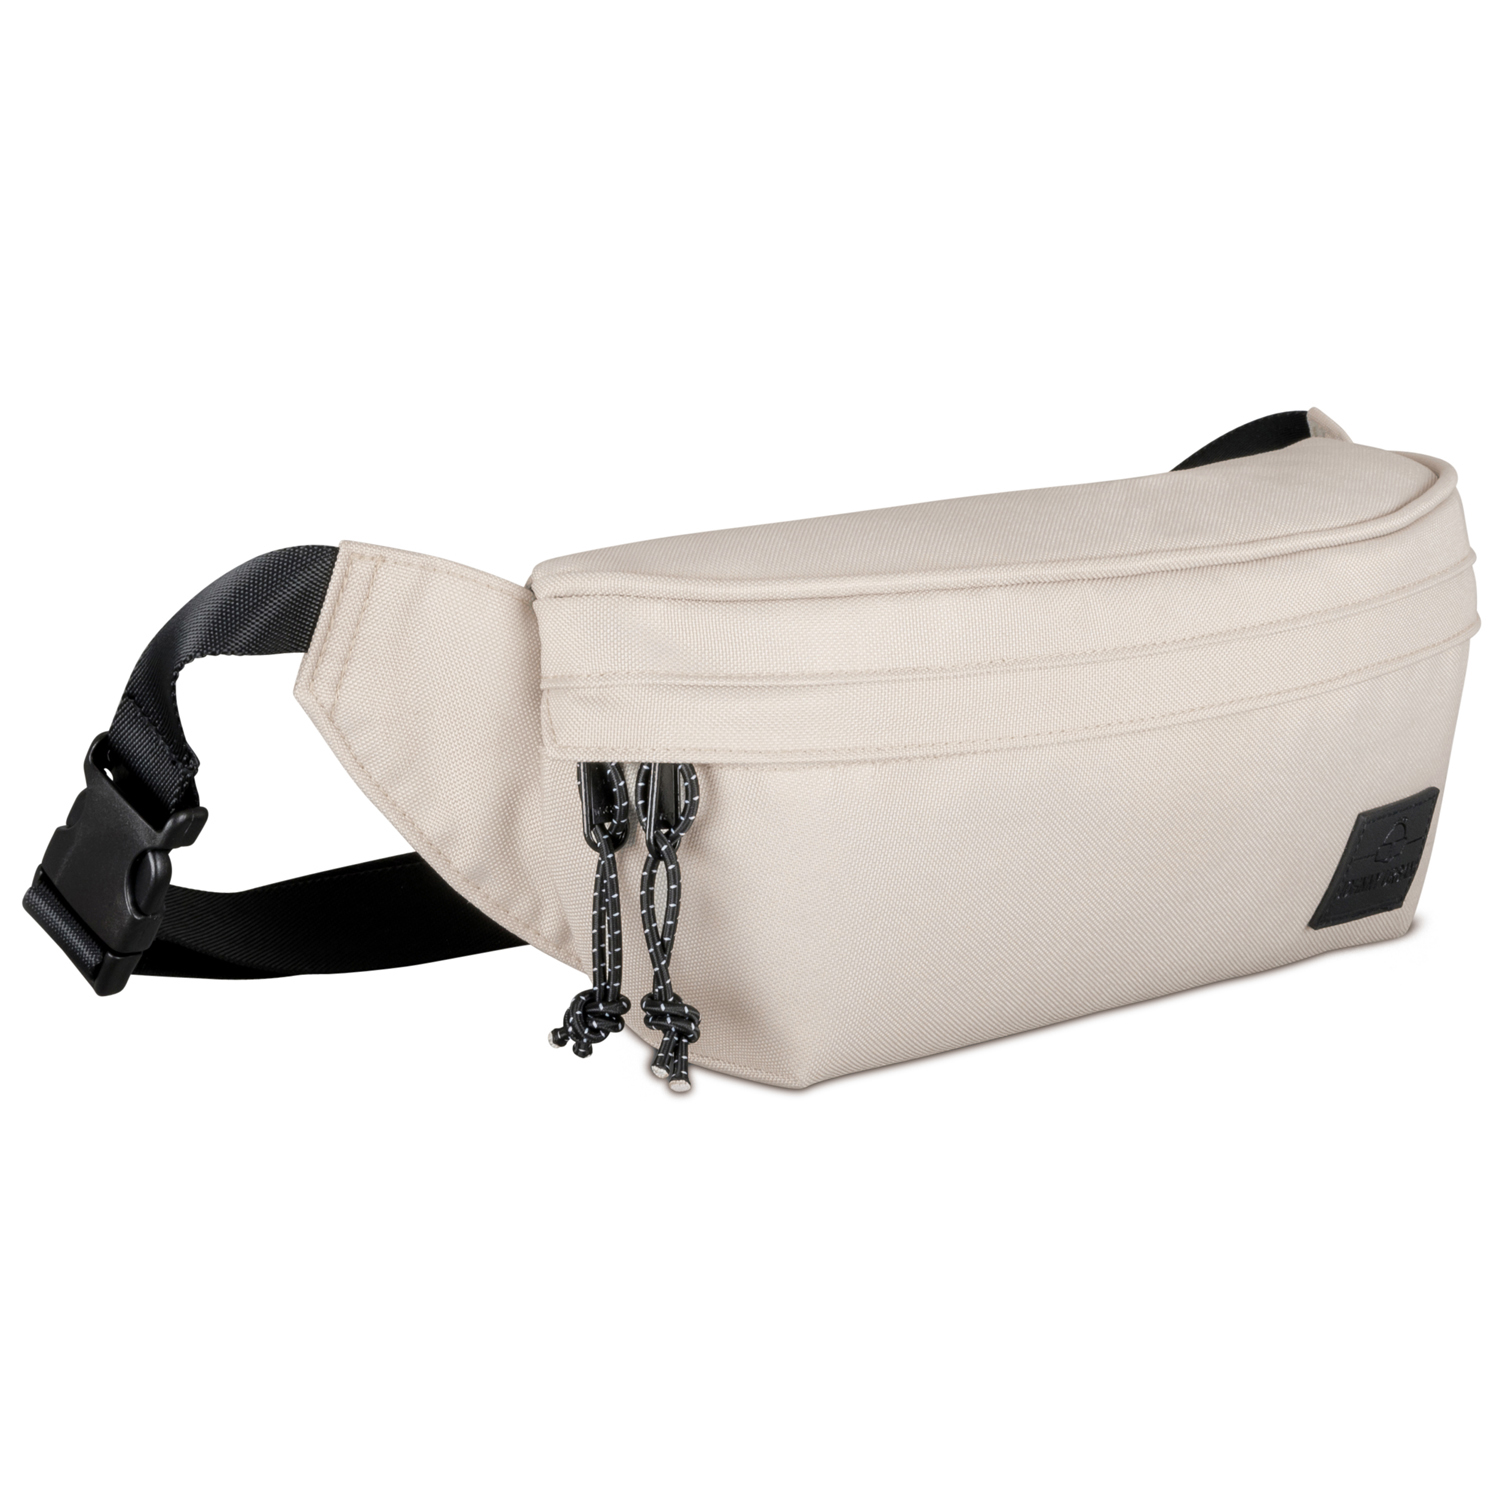 Bauchtasche Hip Bag - Tom - sand - Johnny Urban